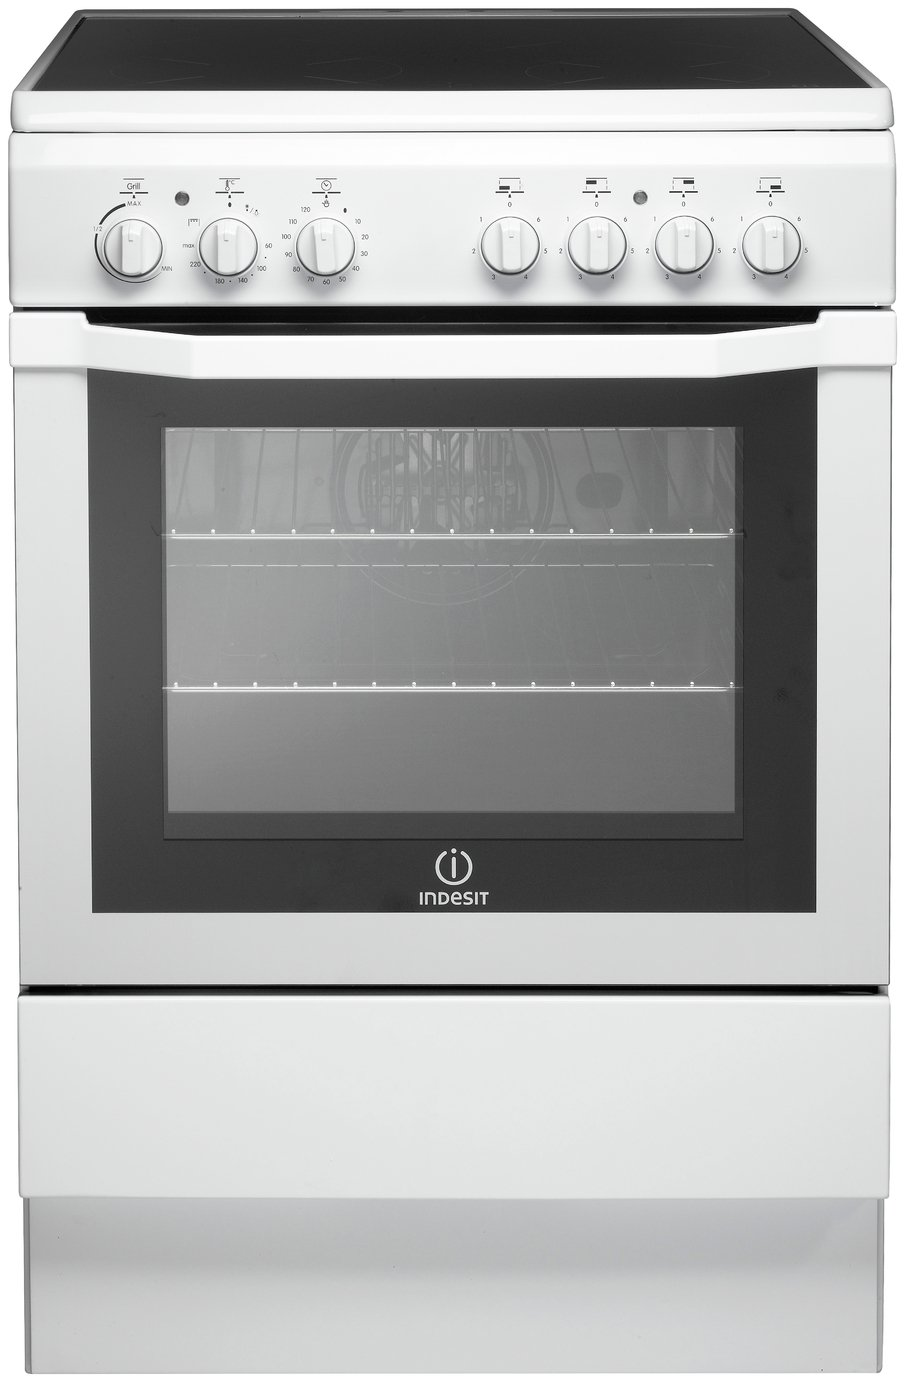 Indesit I6VV2AW 60cm Single Oven Electric Cooker - White